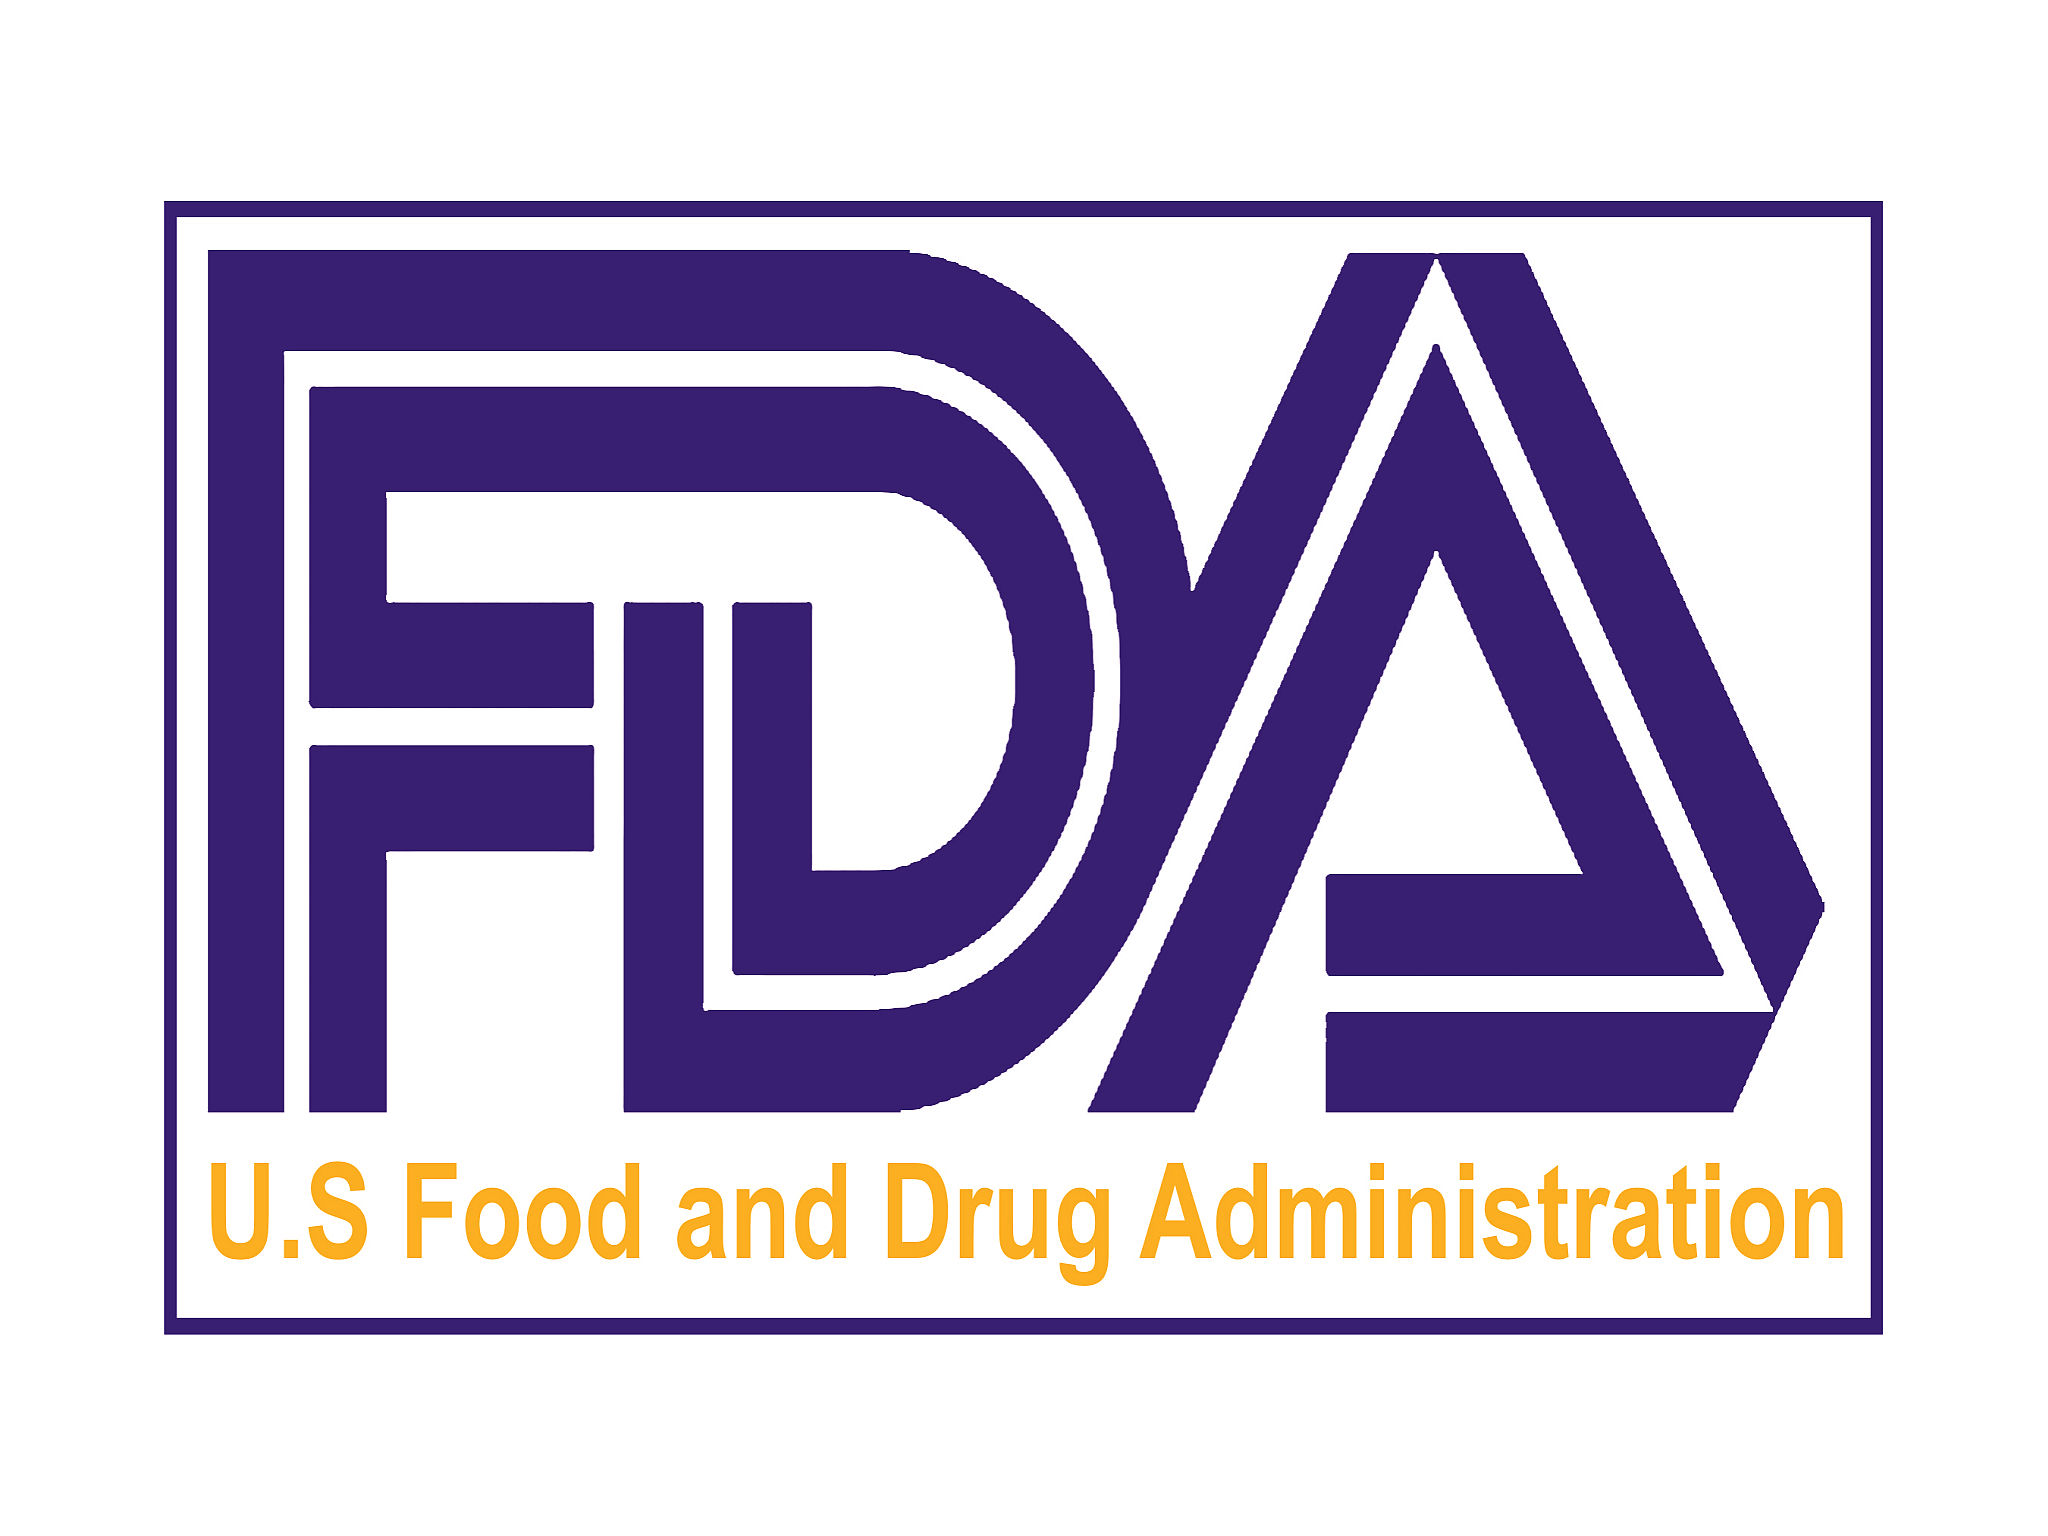 Food and Drug Administration.